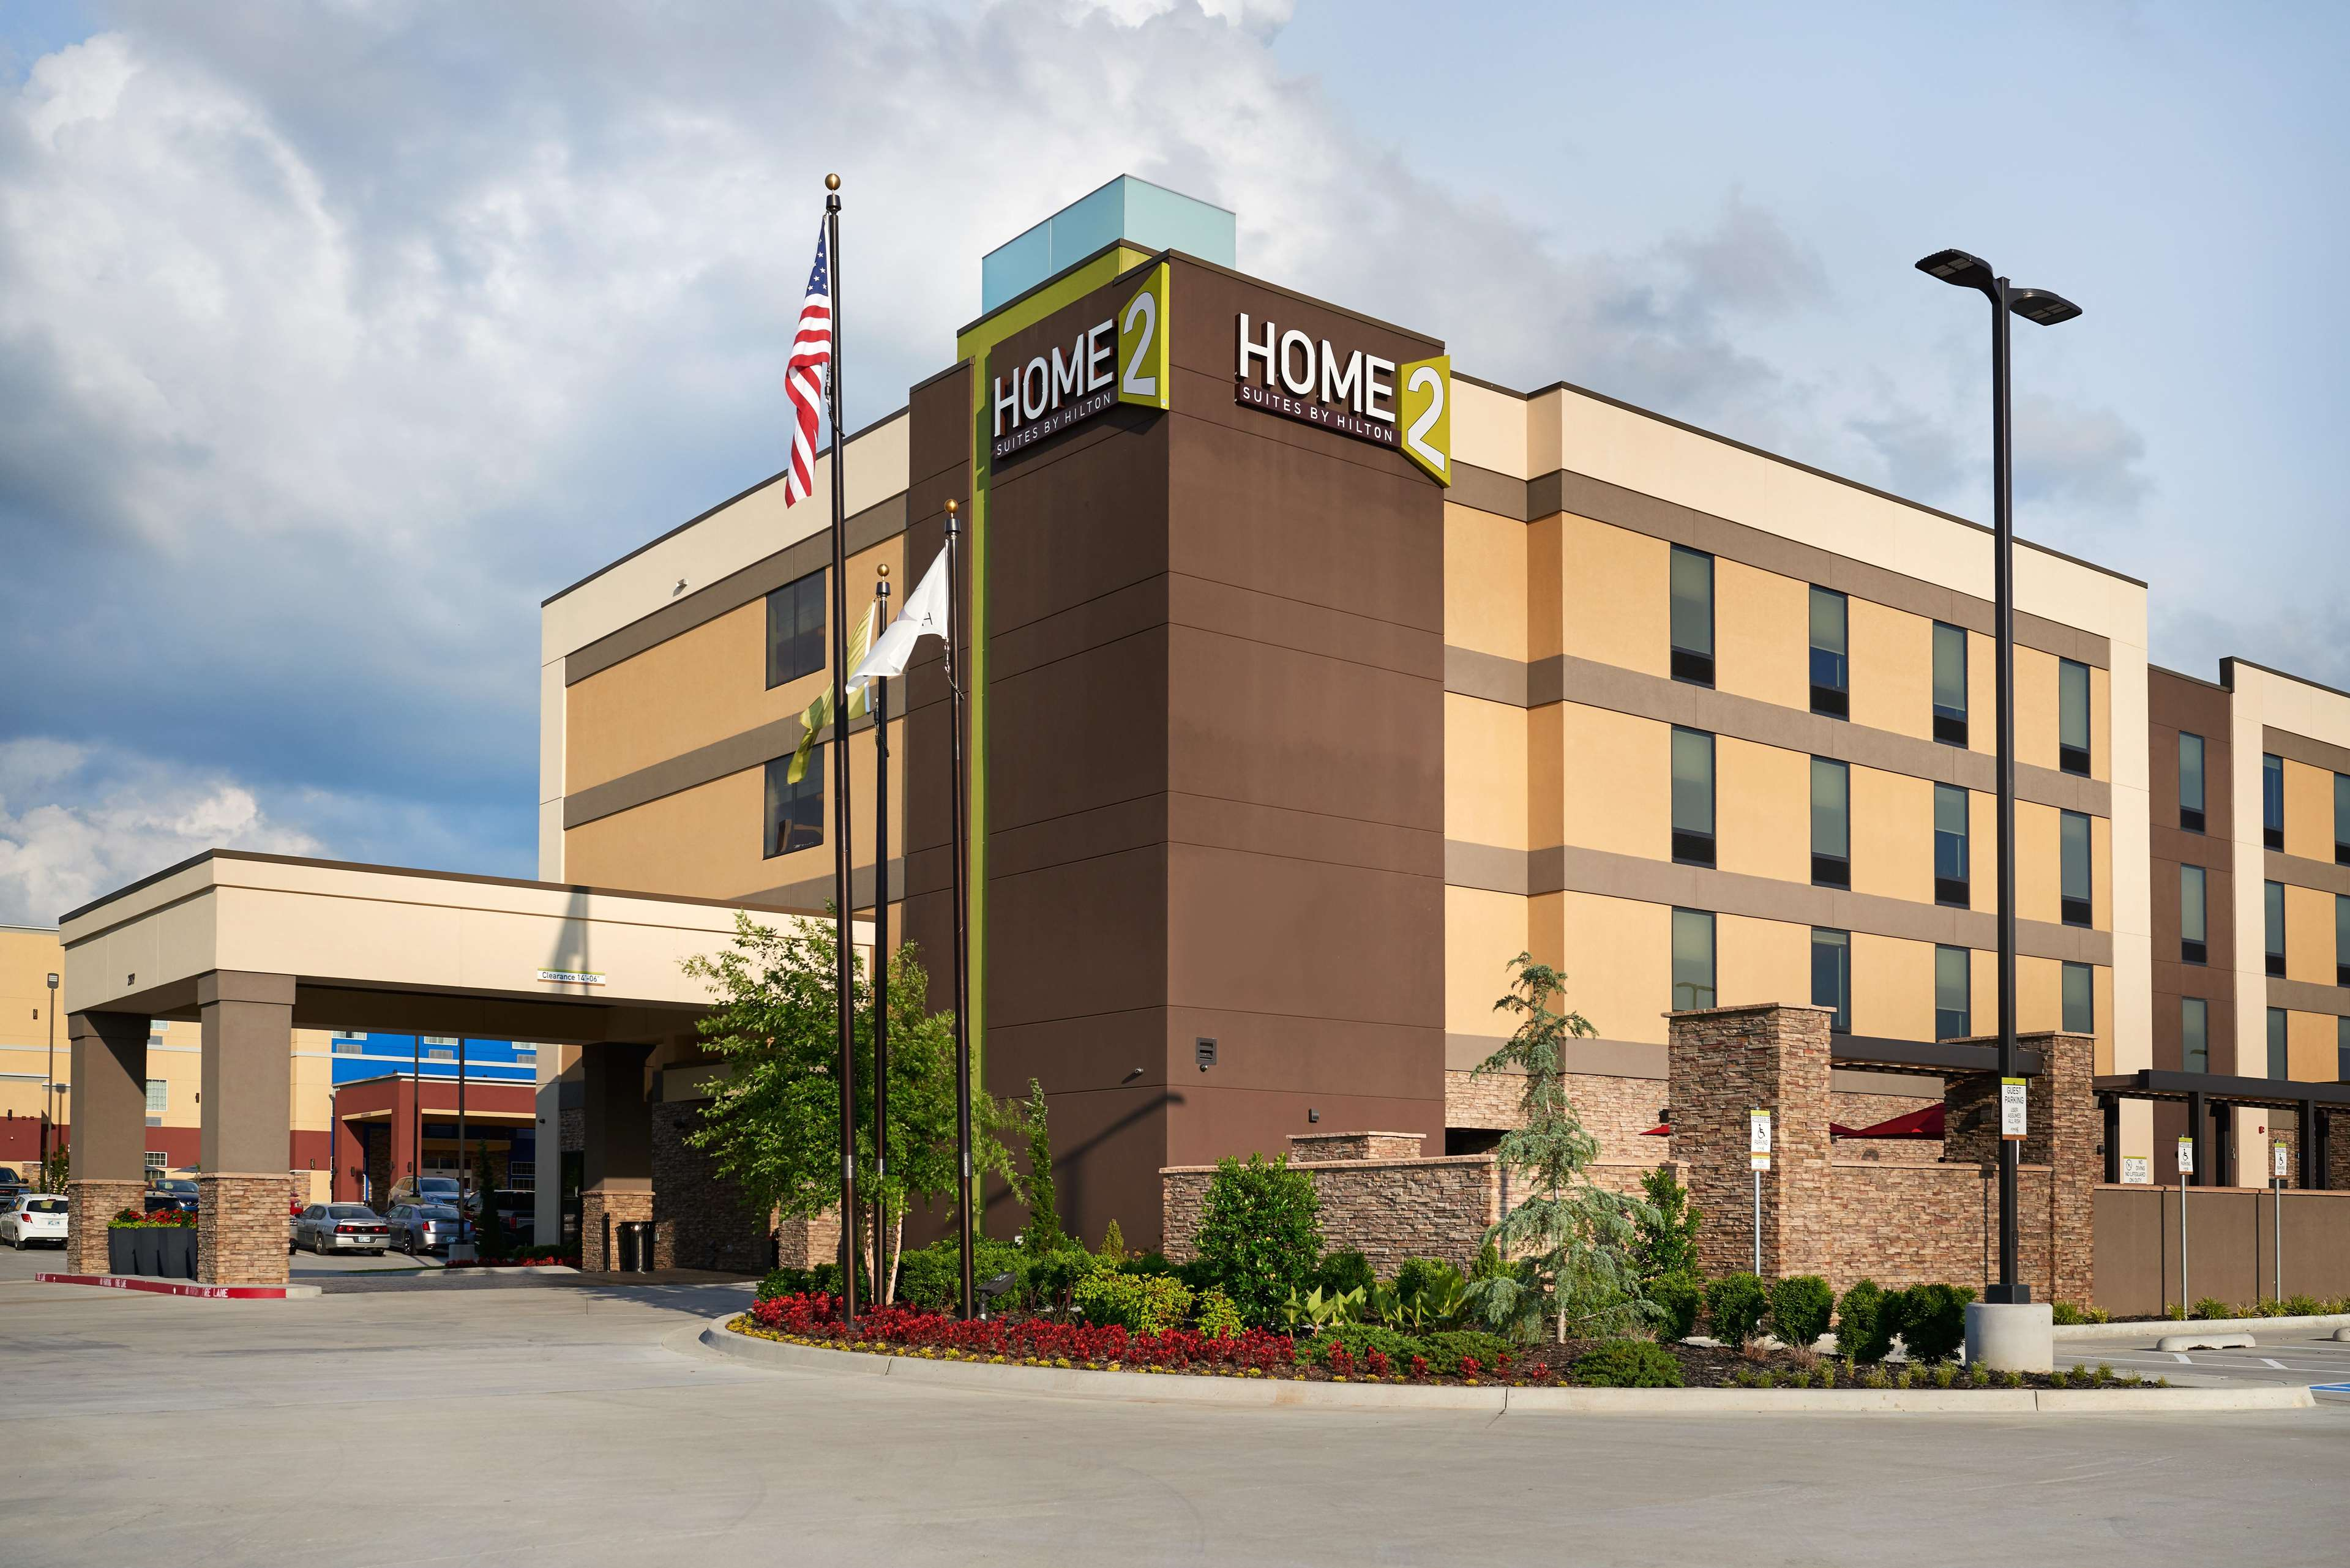 Home 2 Suites by Hilton Muskogee